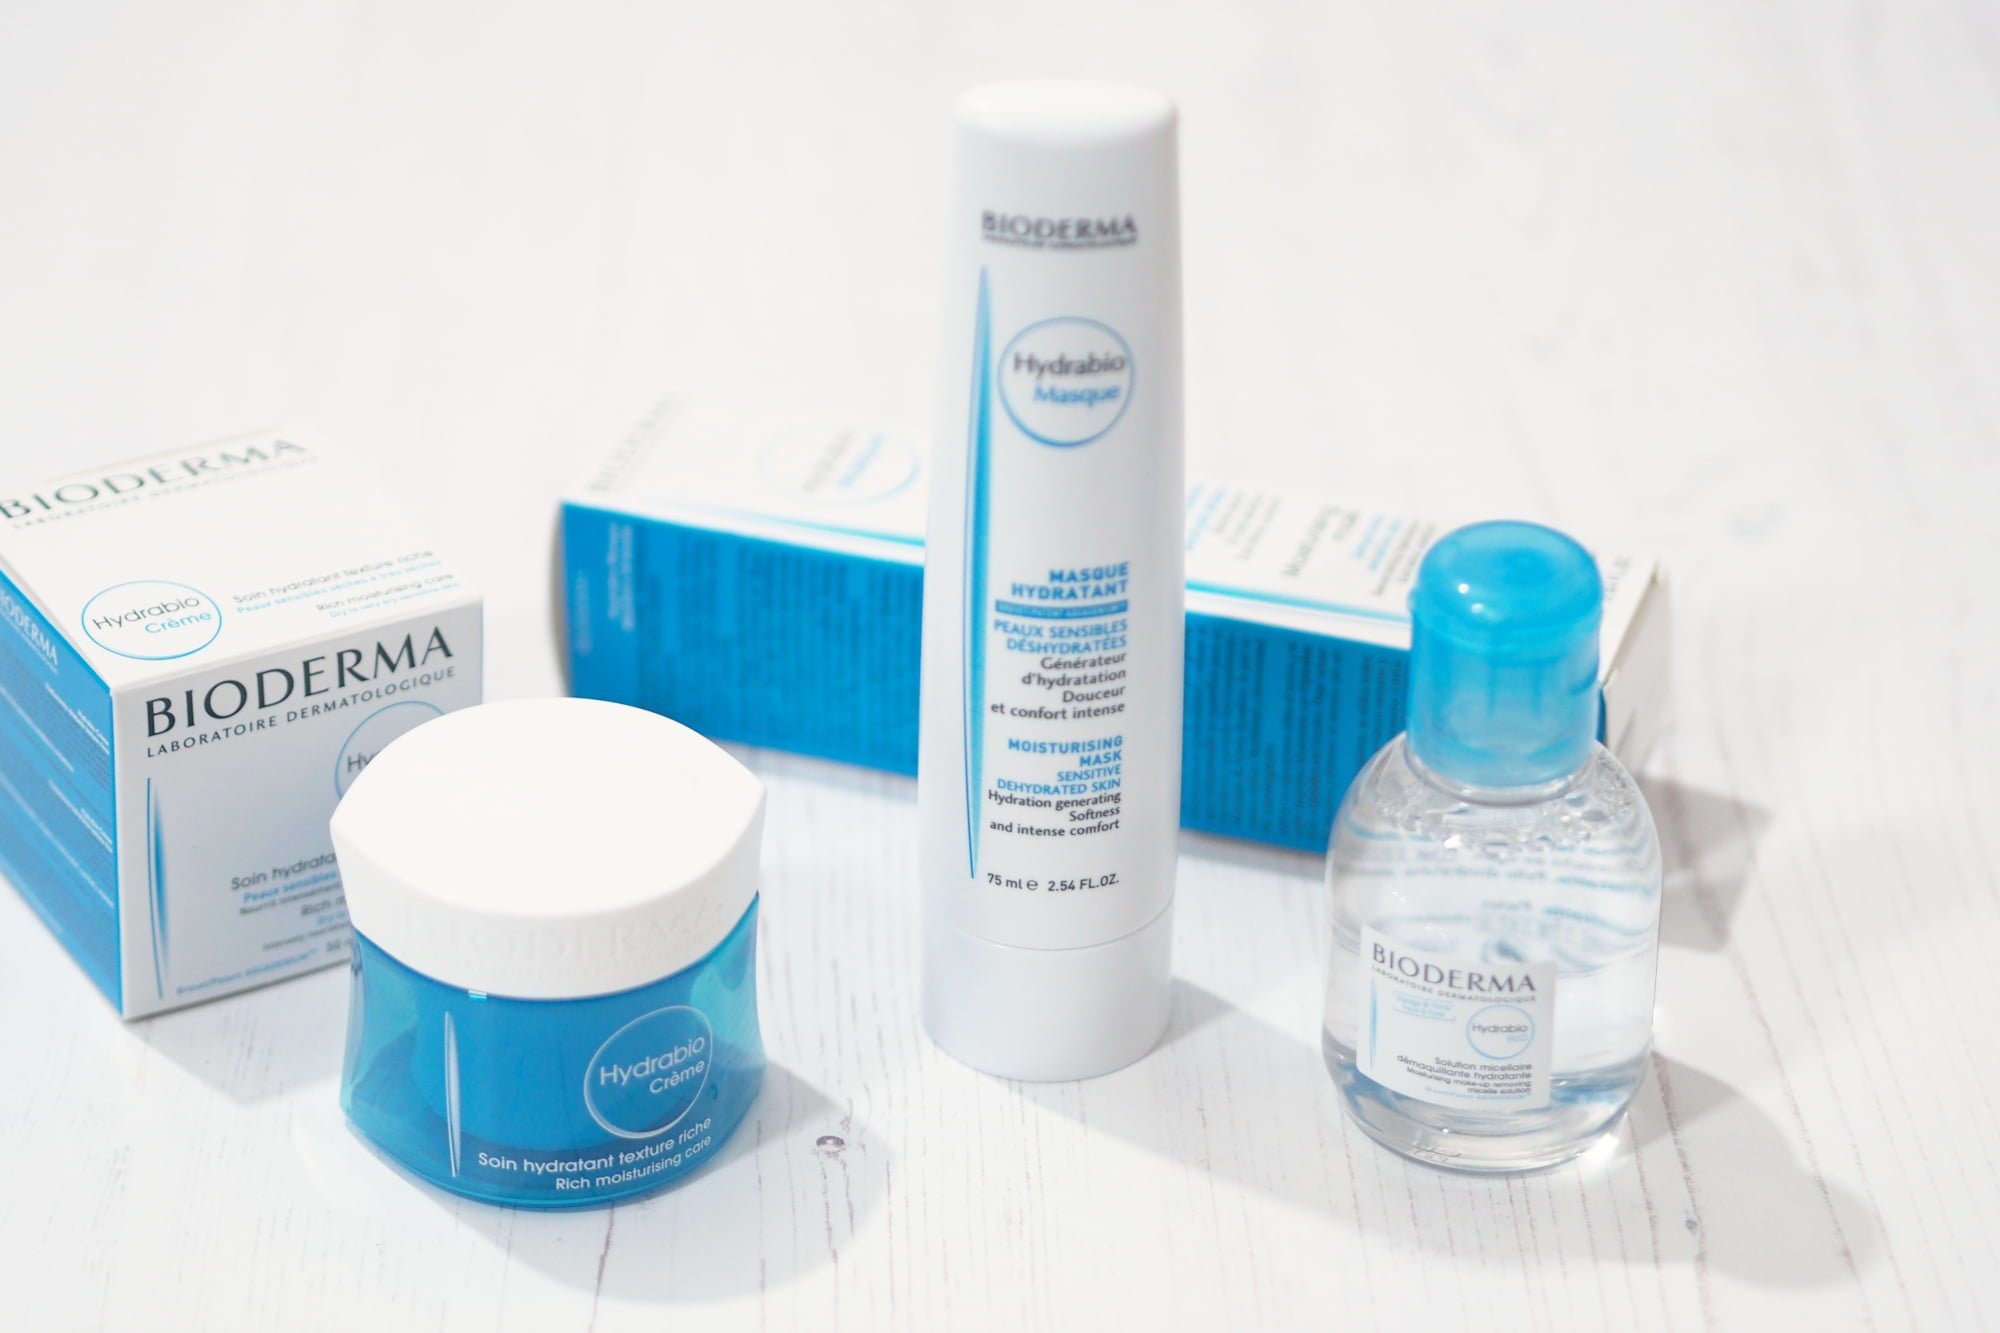 Bioderma Hydrabio Collection ft. Hydrabio Creme, Hydrabio Mask and Hydrabio H2O